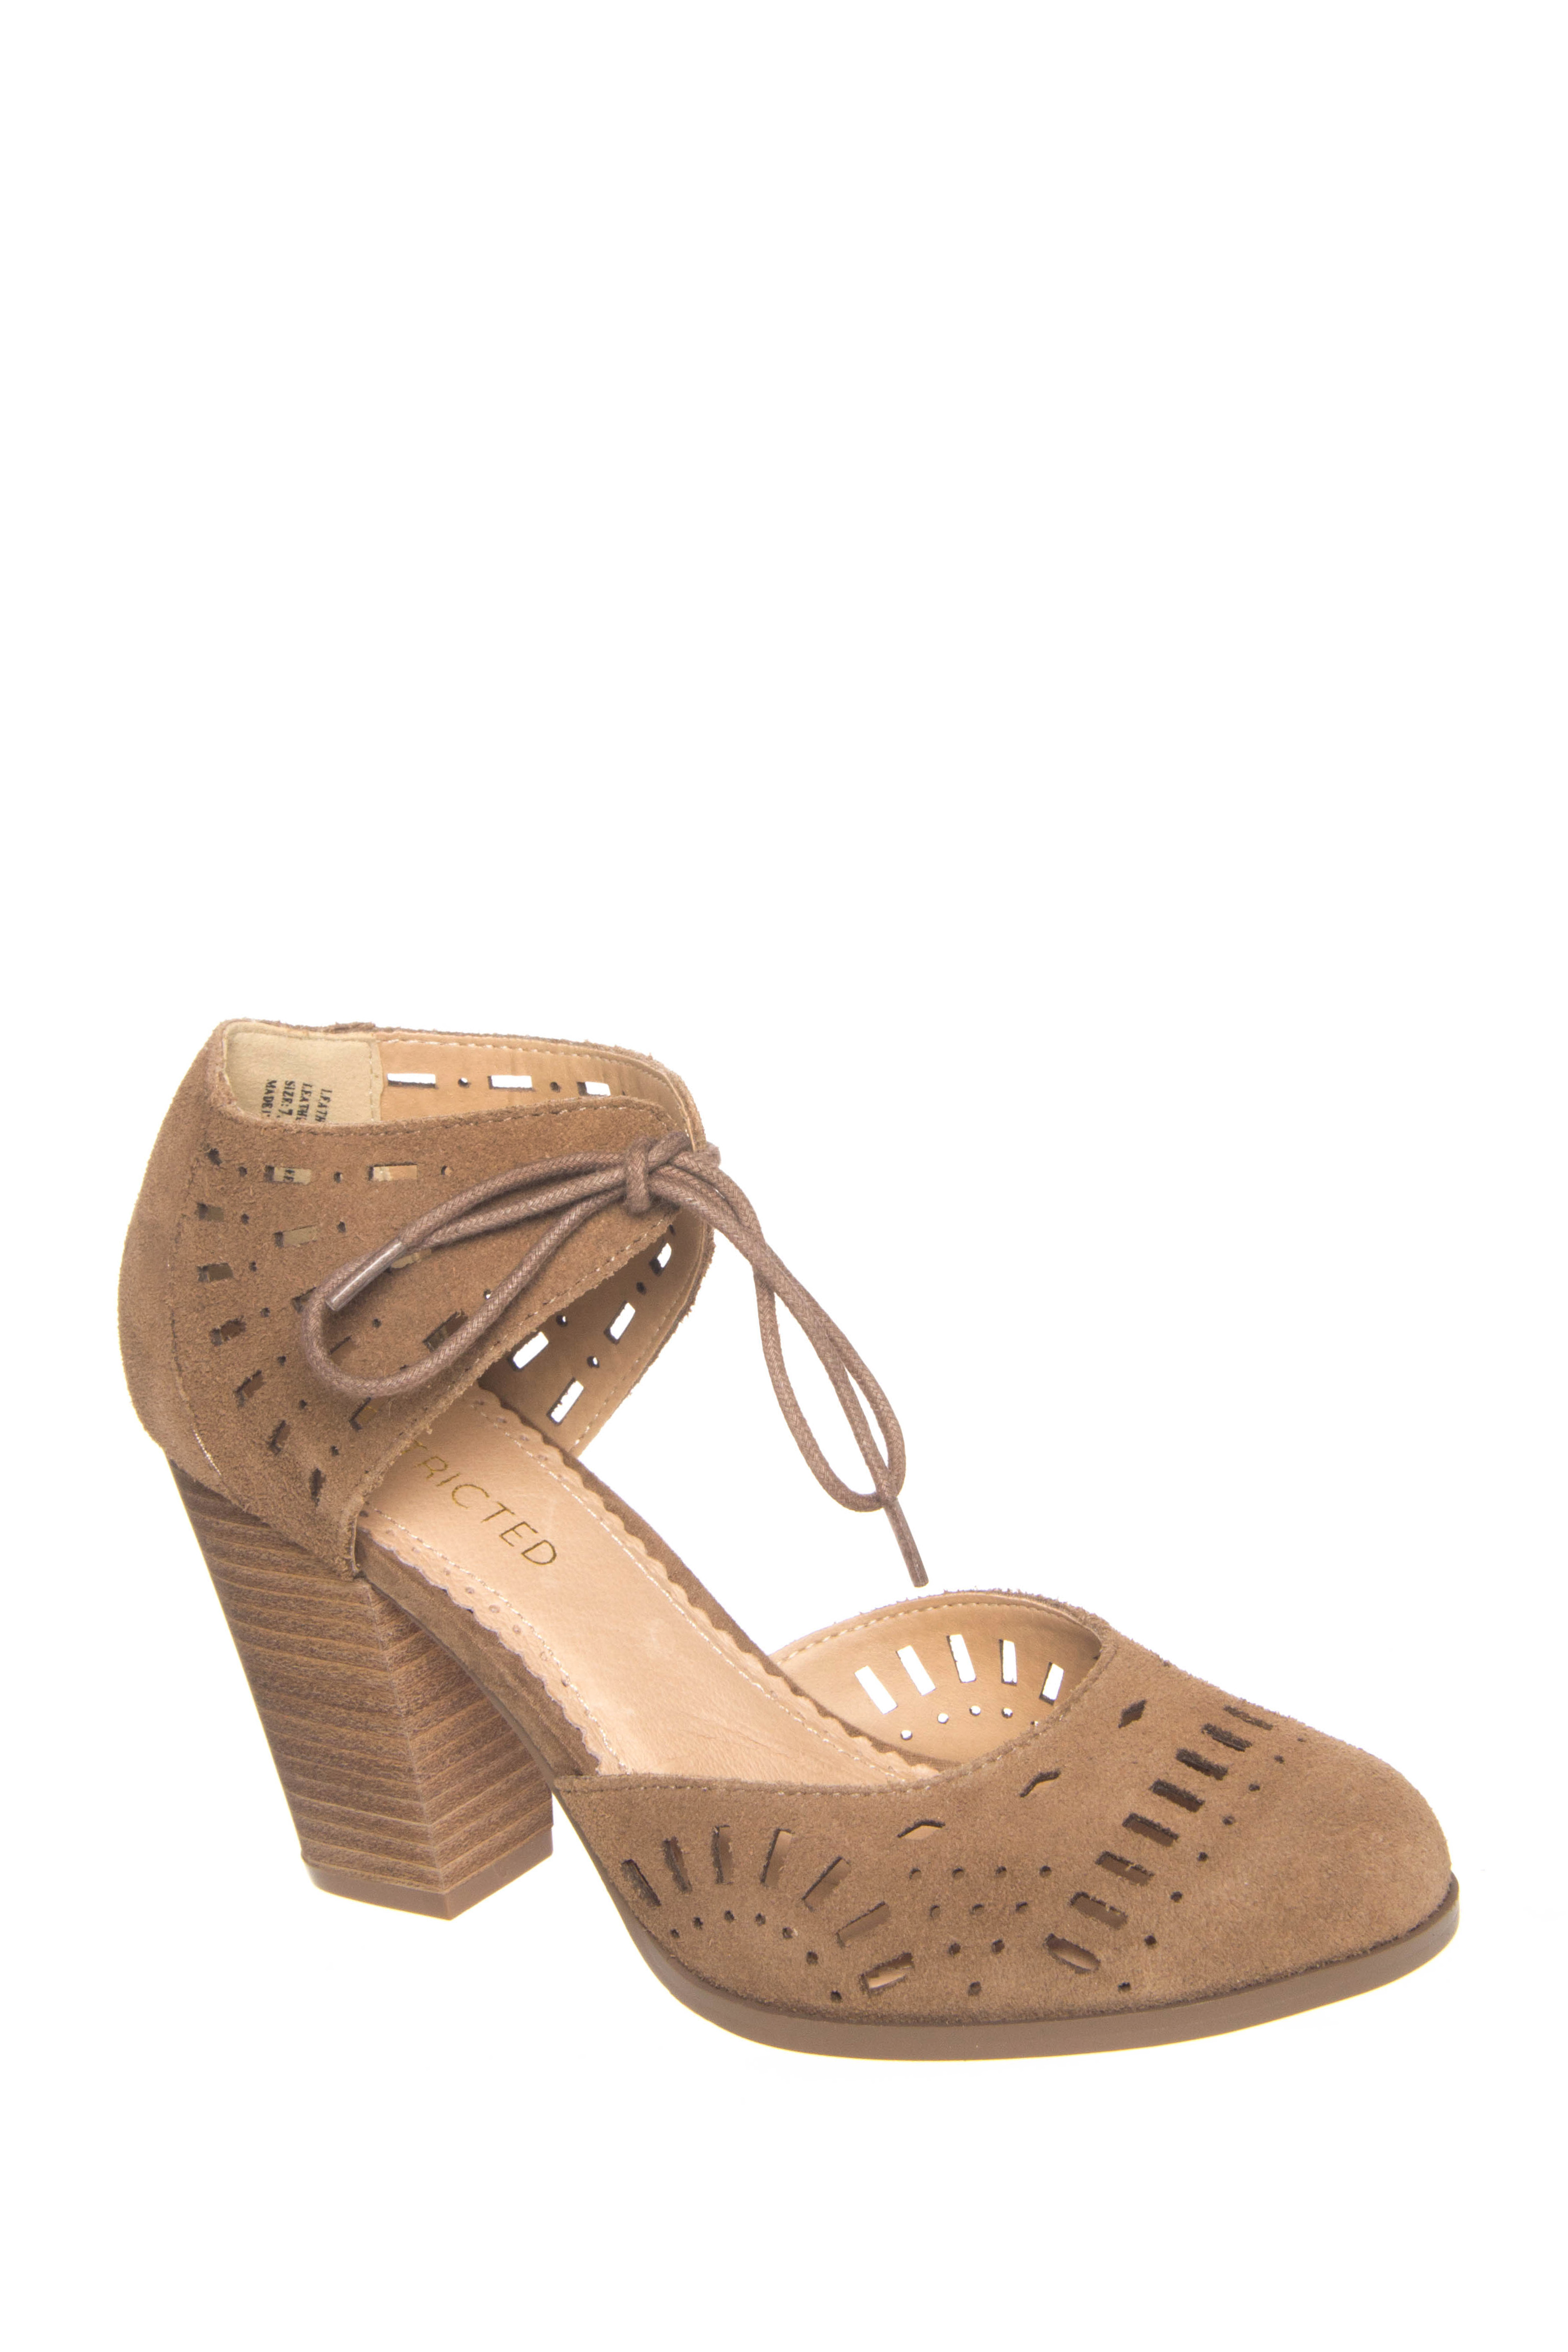 Restricted Cut out Wind Heels - Taupe